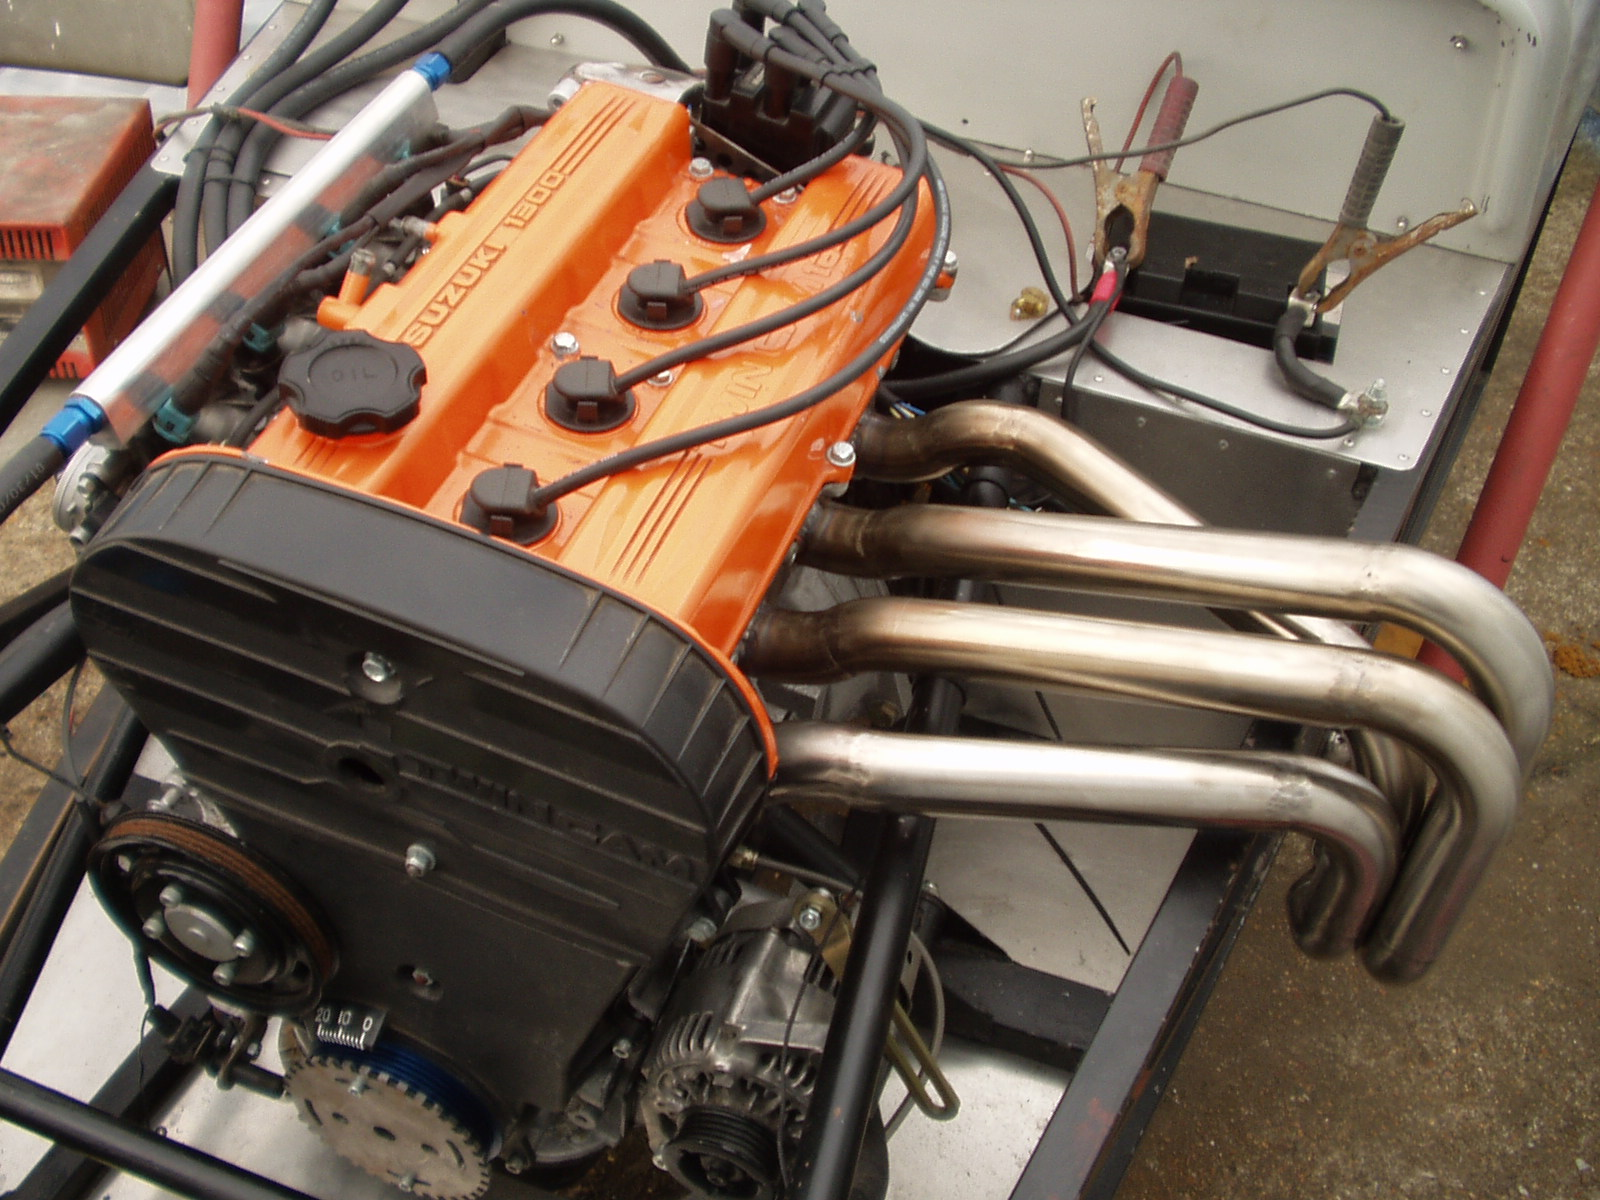 Fabrication: That time I made an Exhaust Manifold | Ogilvie